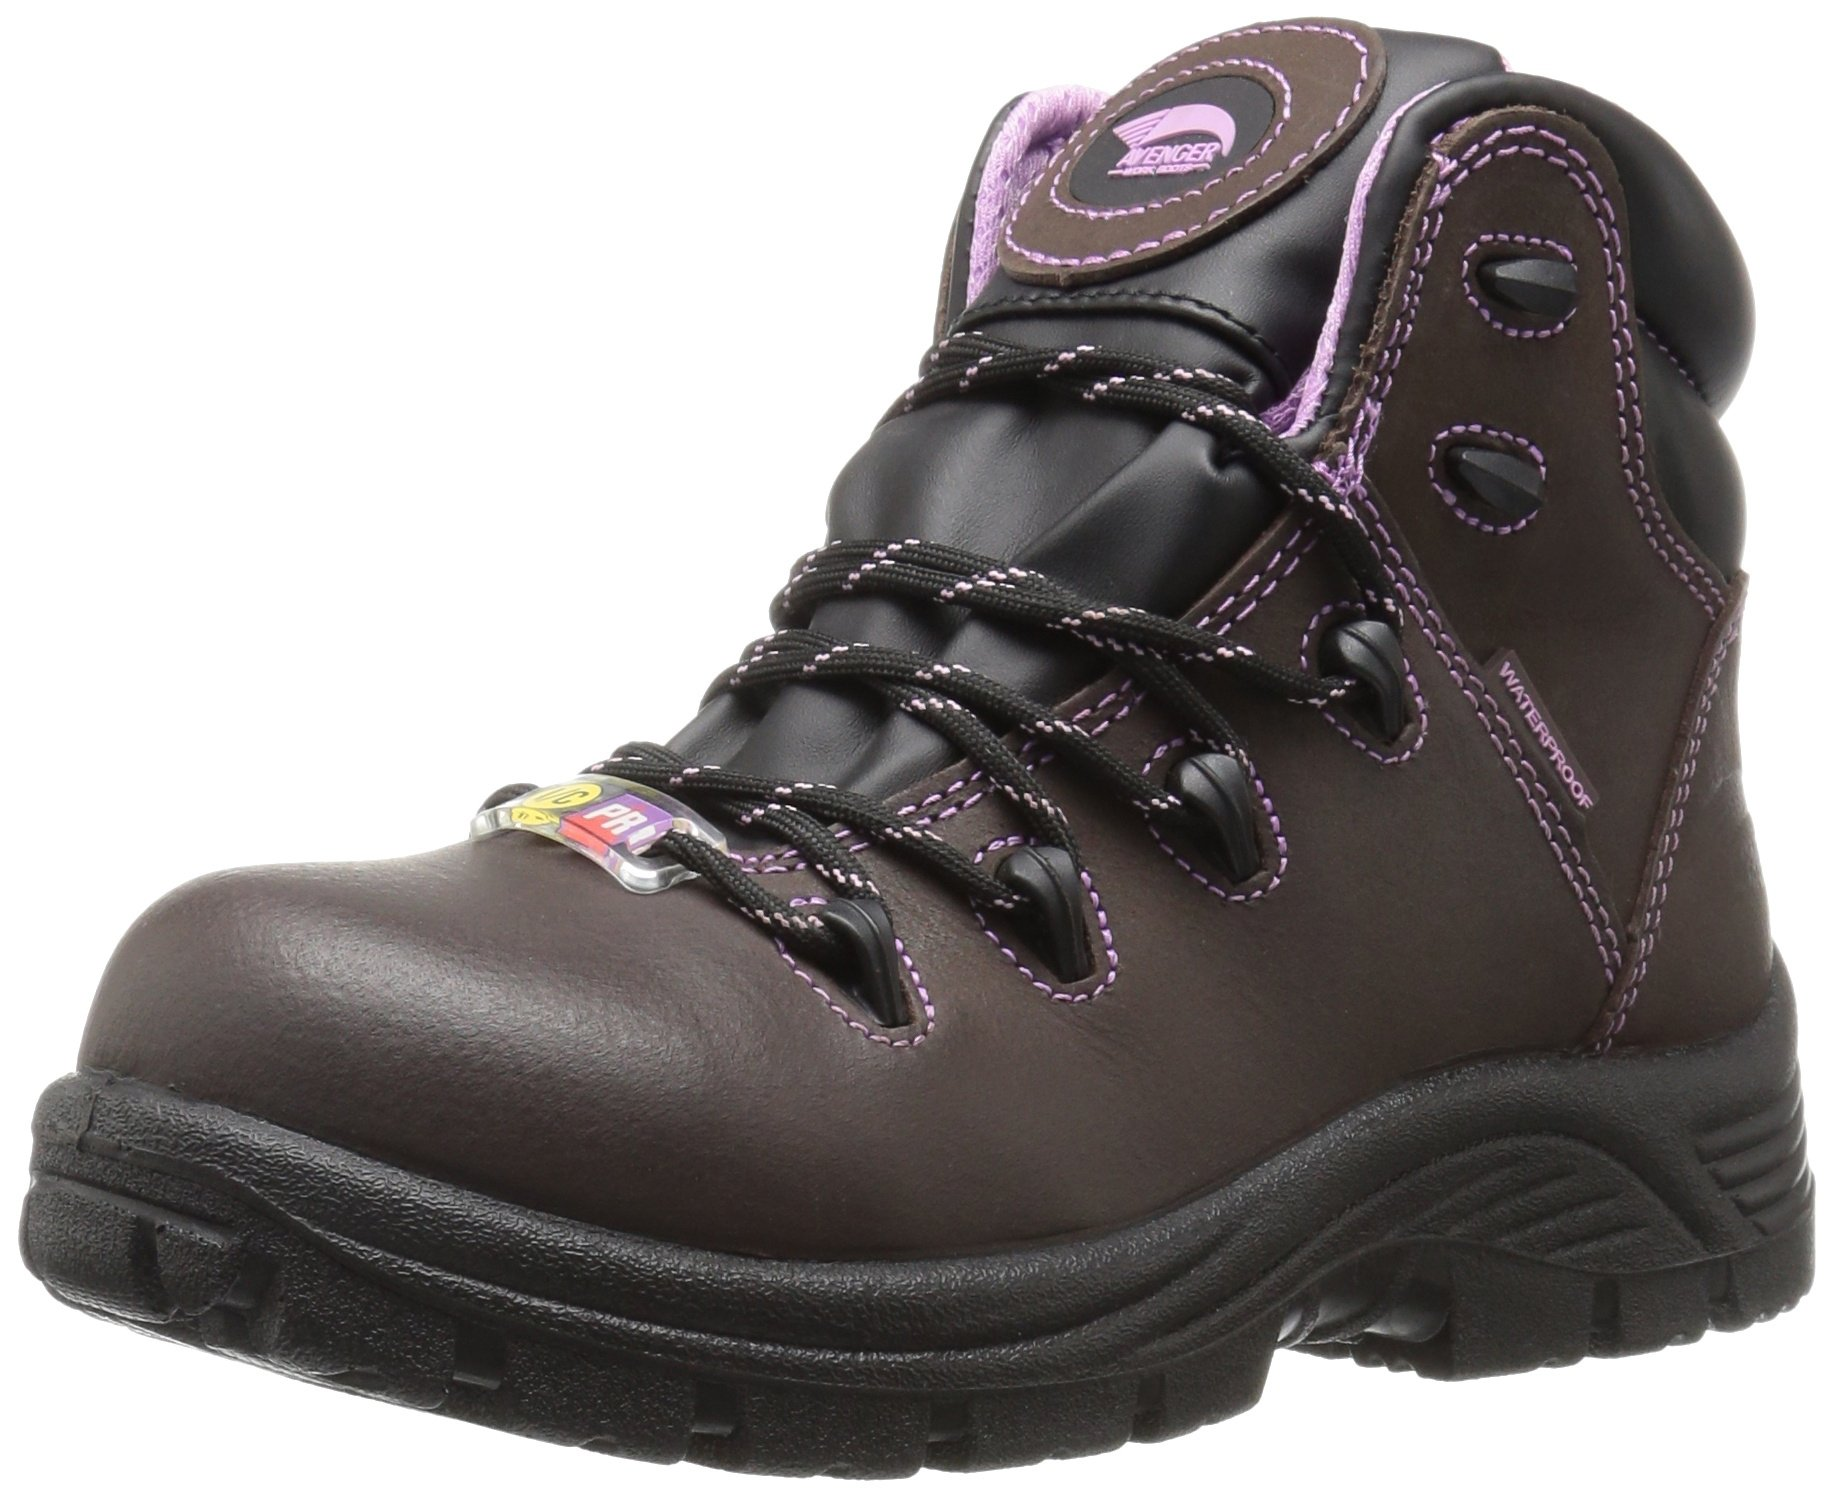 Avenger Women's 7123 Leather Waterproof Puncture Resistant Comp Toe EH Work Boot Industrial and Construction Shoe, Brown, 8 2E US